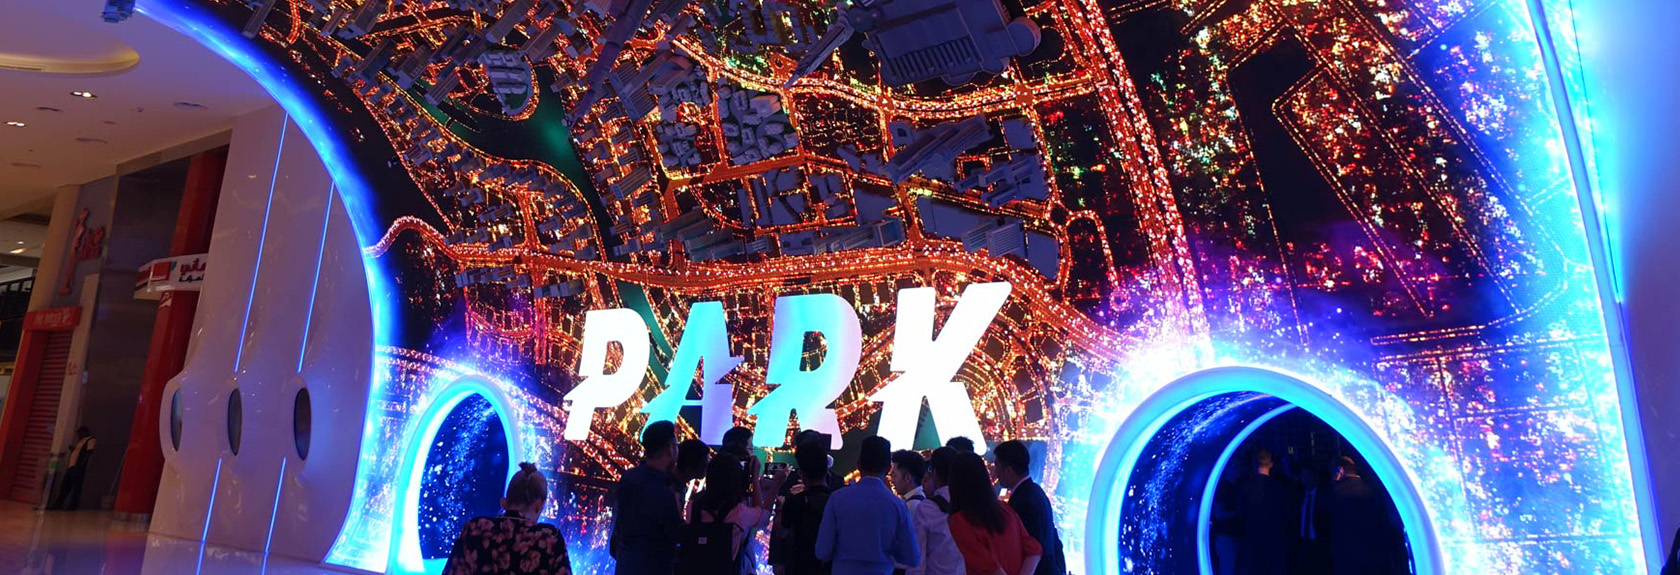 VR Park Dubai – the largest virtual reality park in the world